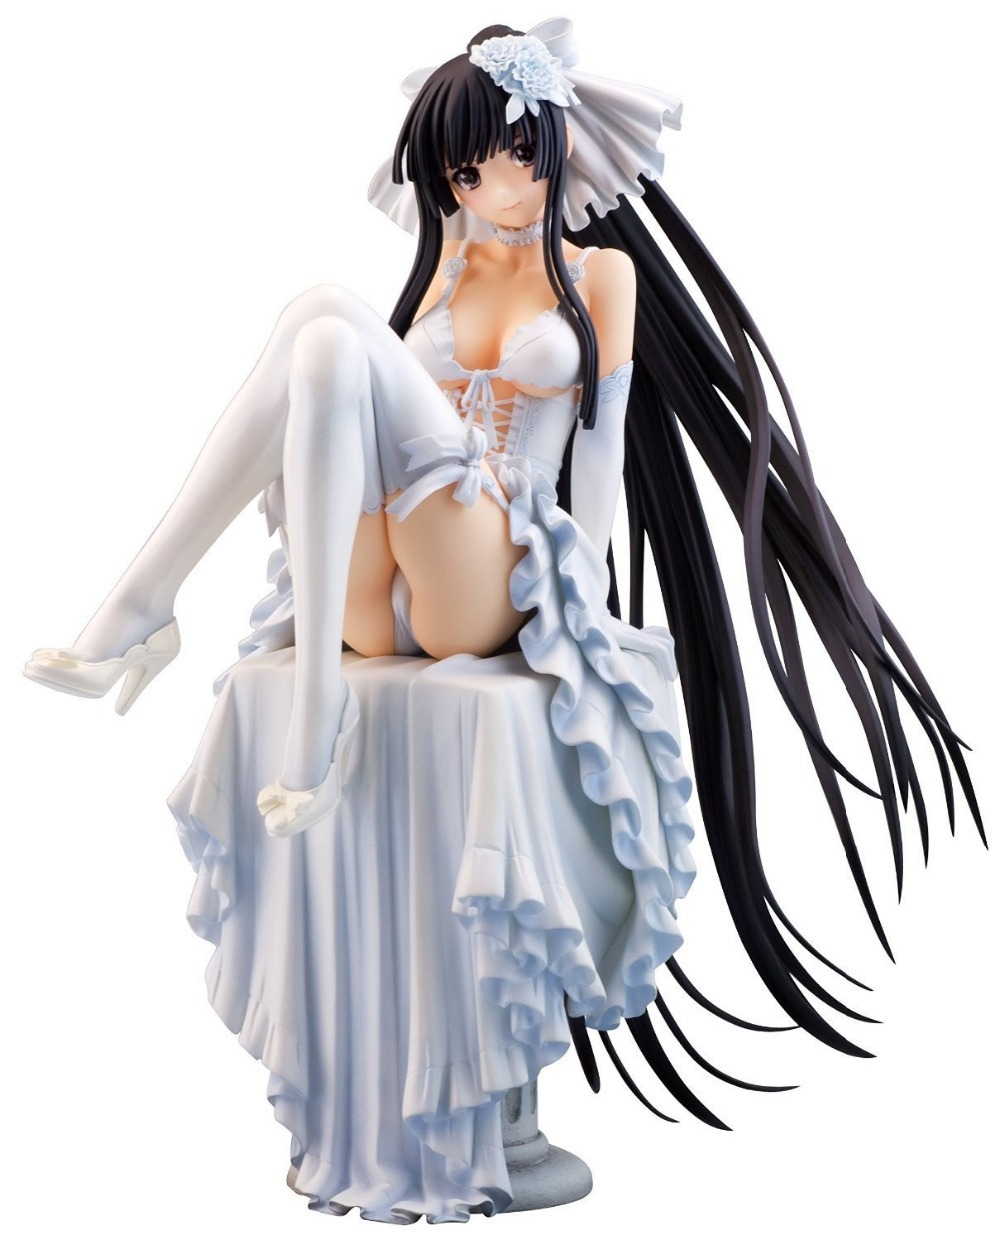 <font><b>Hot</b></font> Sale Tony Taka Calendar Narukami Yuno Yumemiru Hakoiri Musume 1/8 Scale Skytube T2 Art <font><b>Girls</b></font> <font><b>Sexy</b></font> 23CM Action Figure Toys image